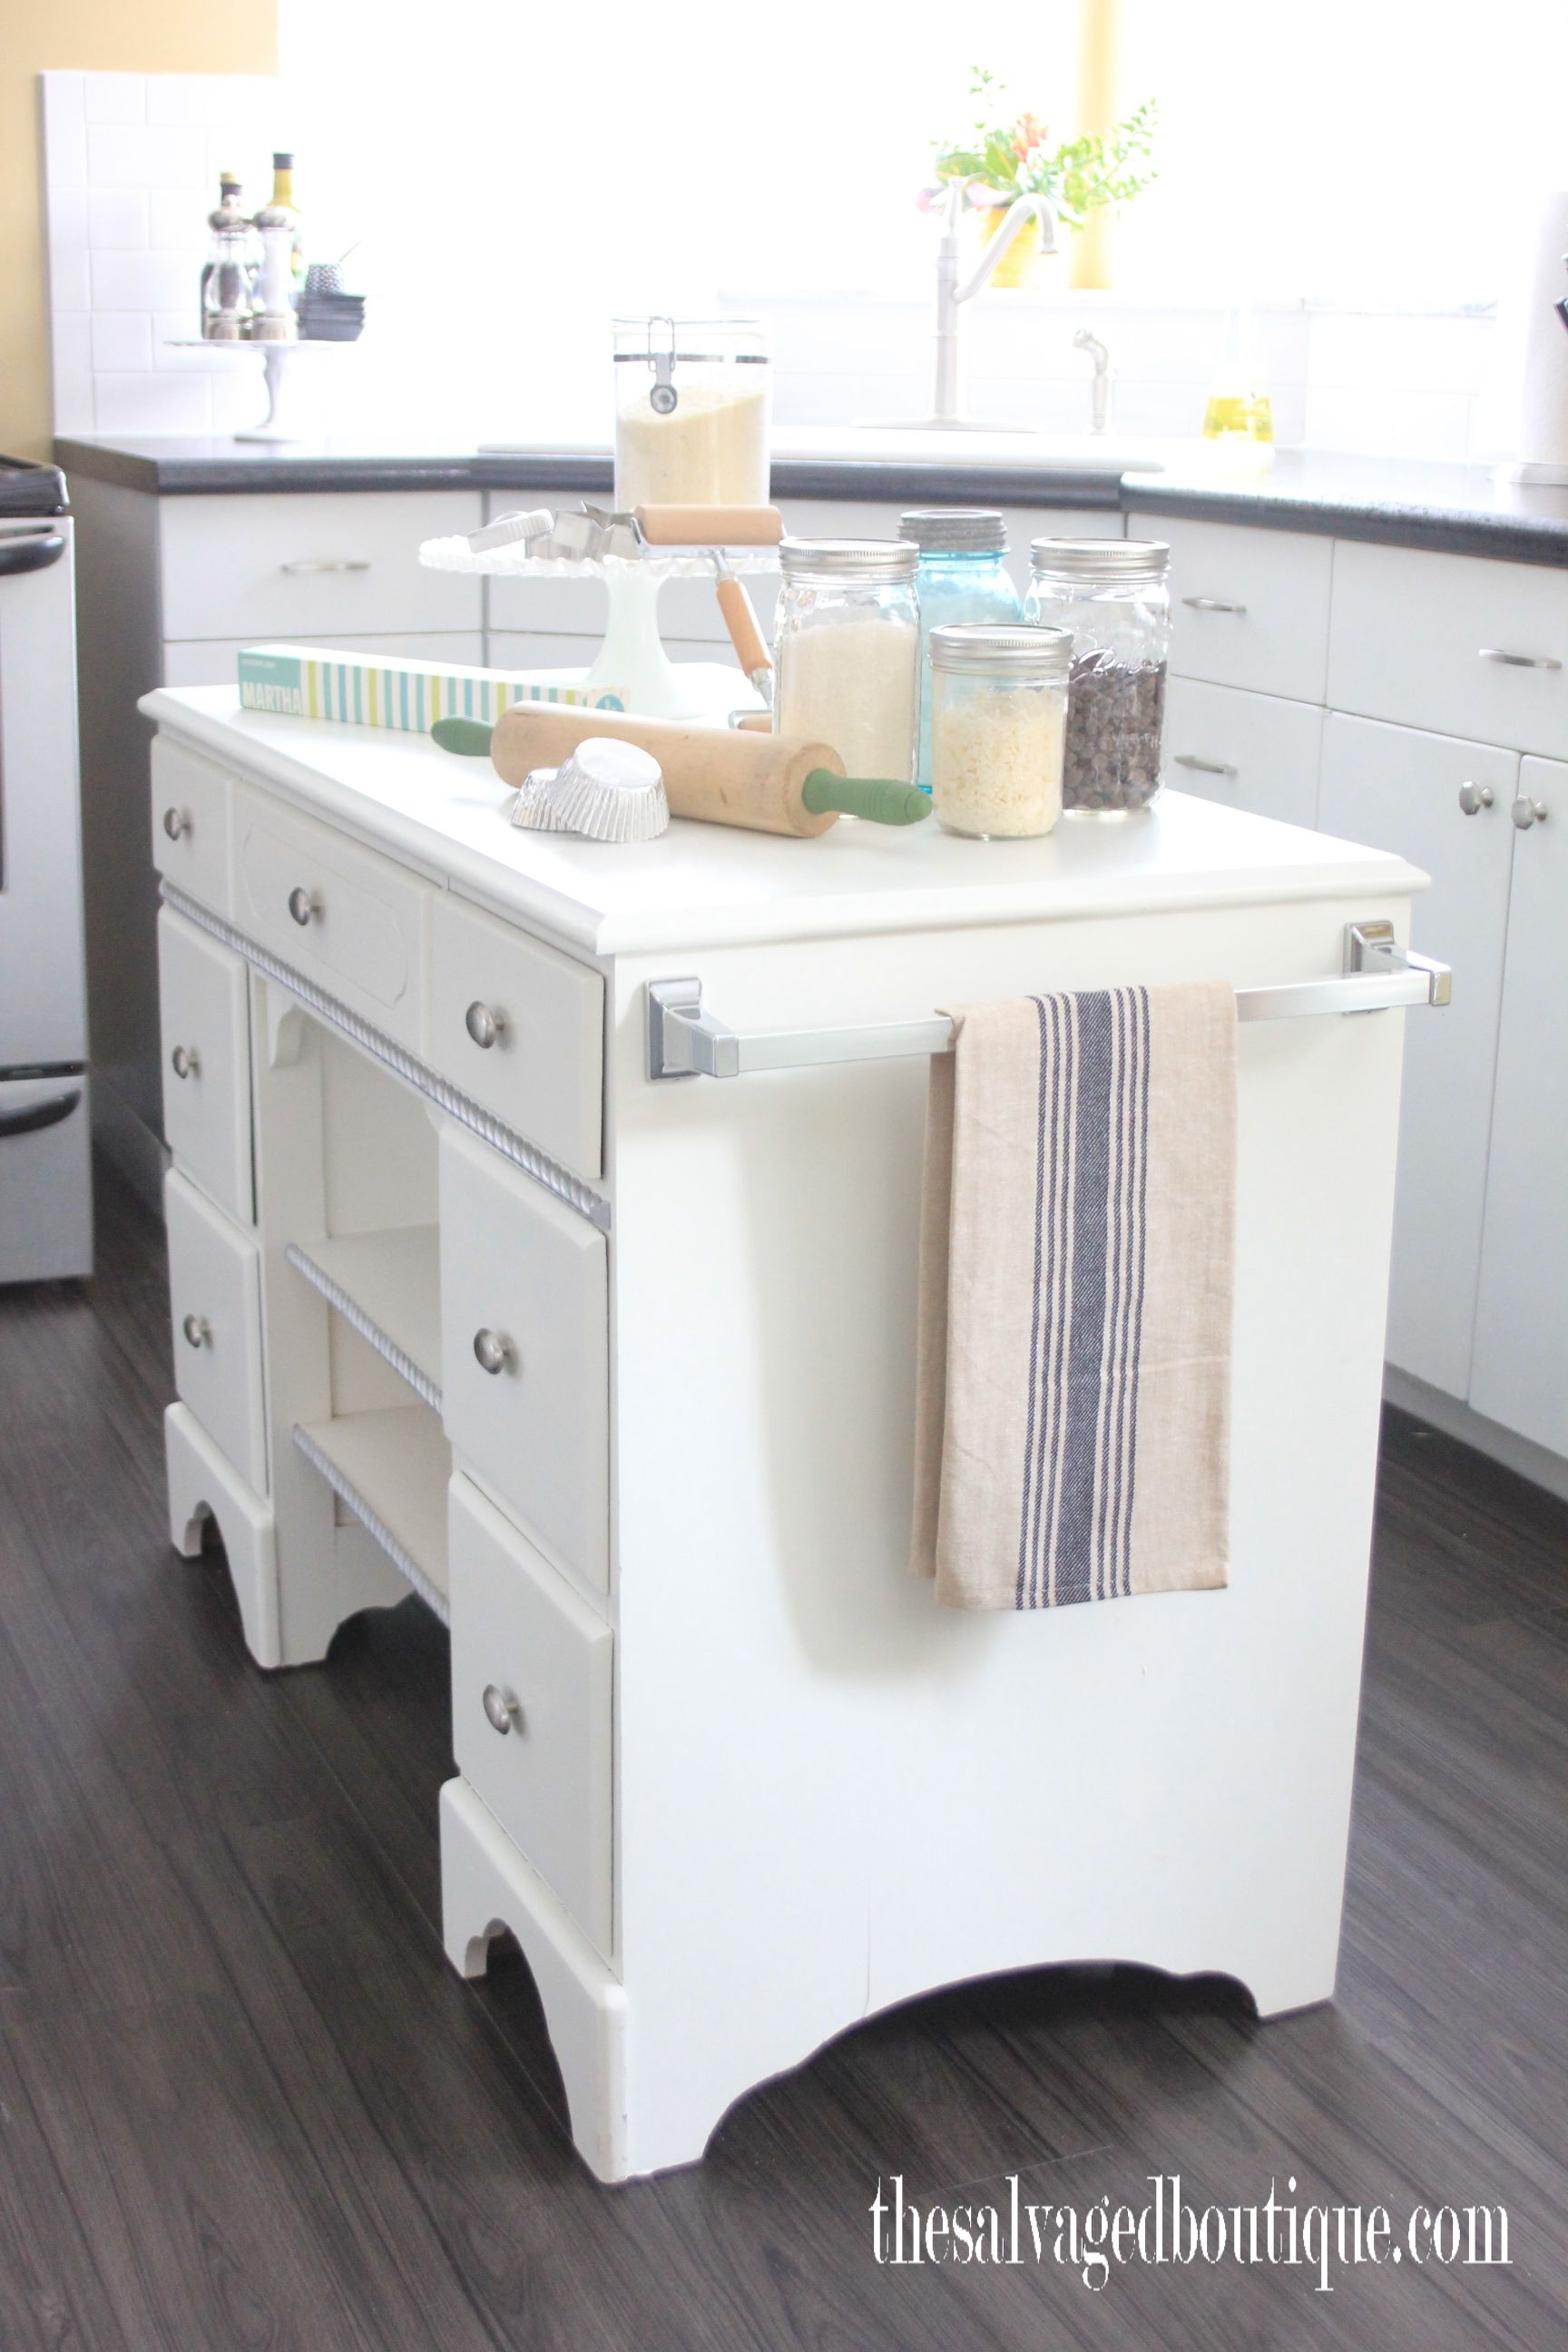 The salvaged boutique upcycles another vintage desk to create a